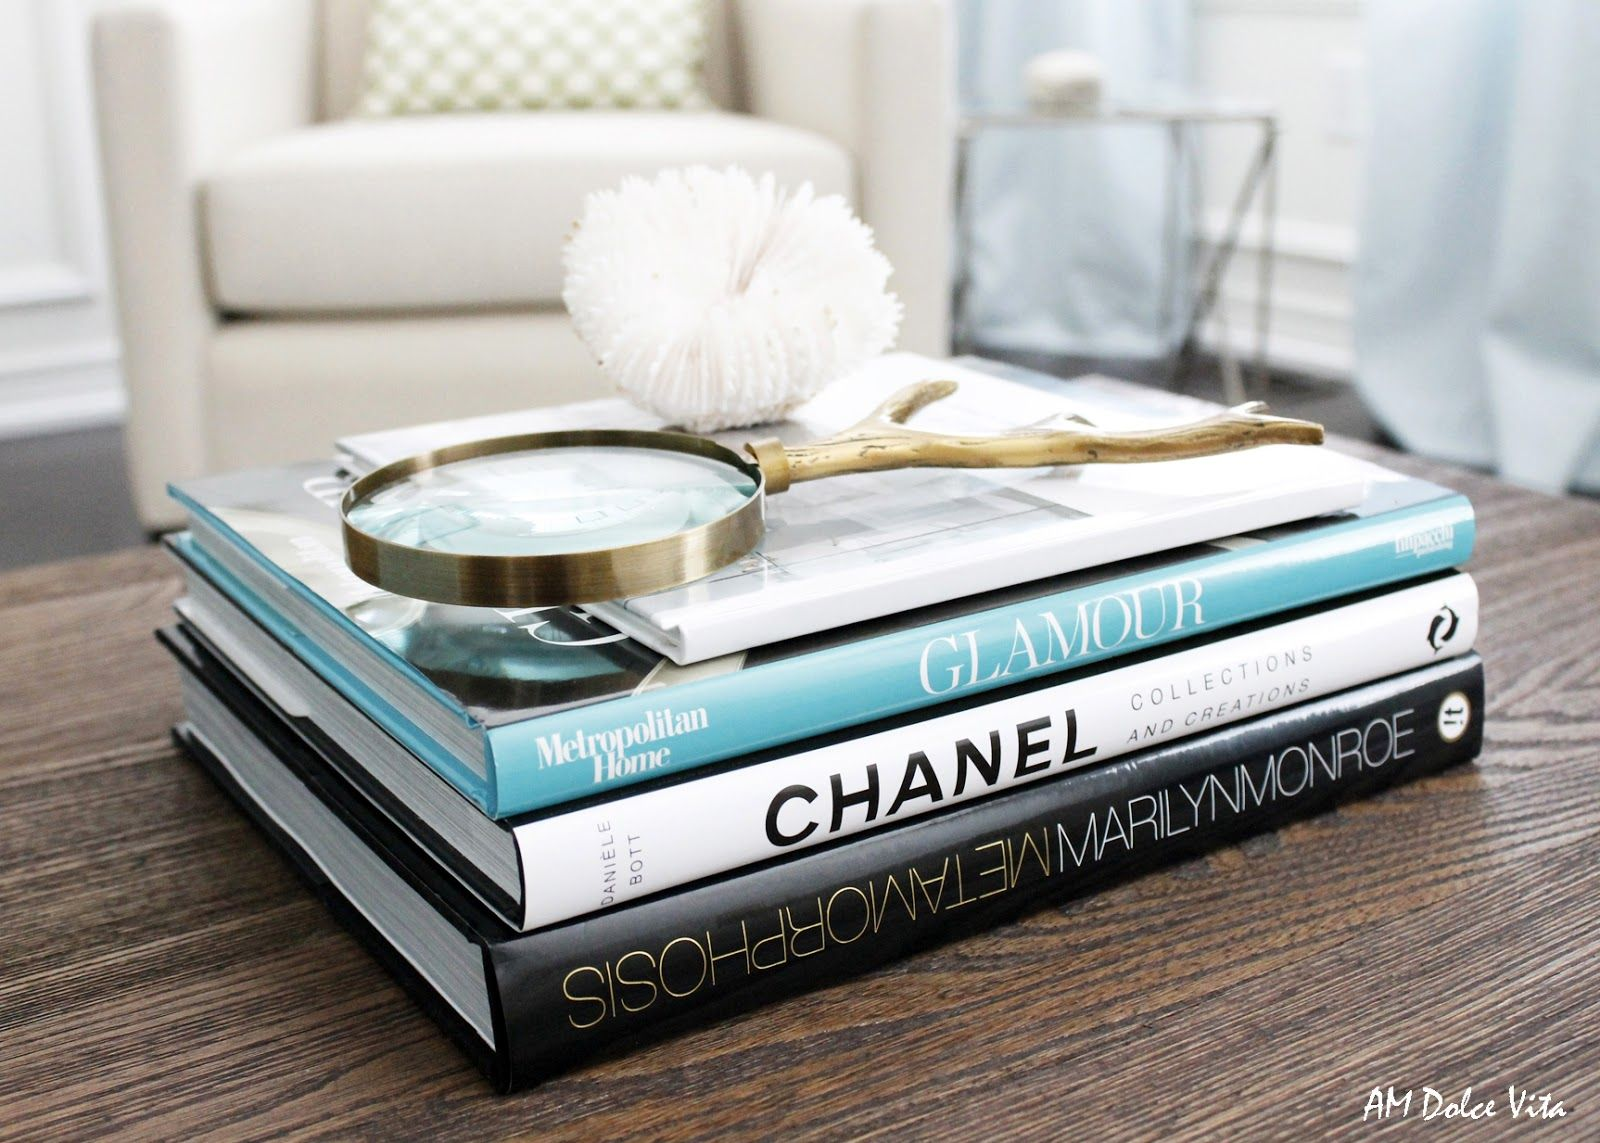 Conversation Starting Coffee Table Books Best Coffee Table Books Coffee Table Styling Coffee Table Books Cheap